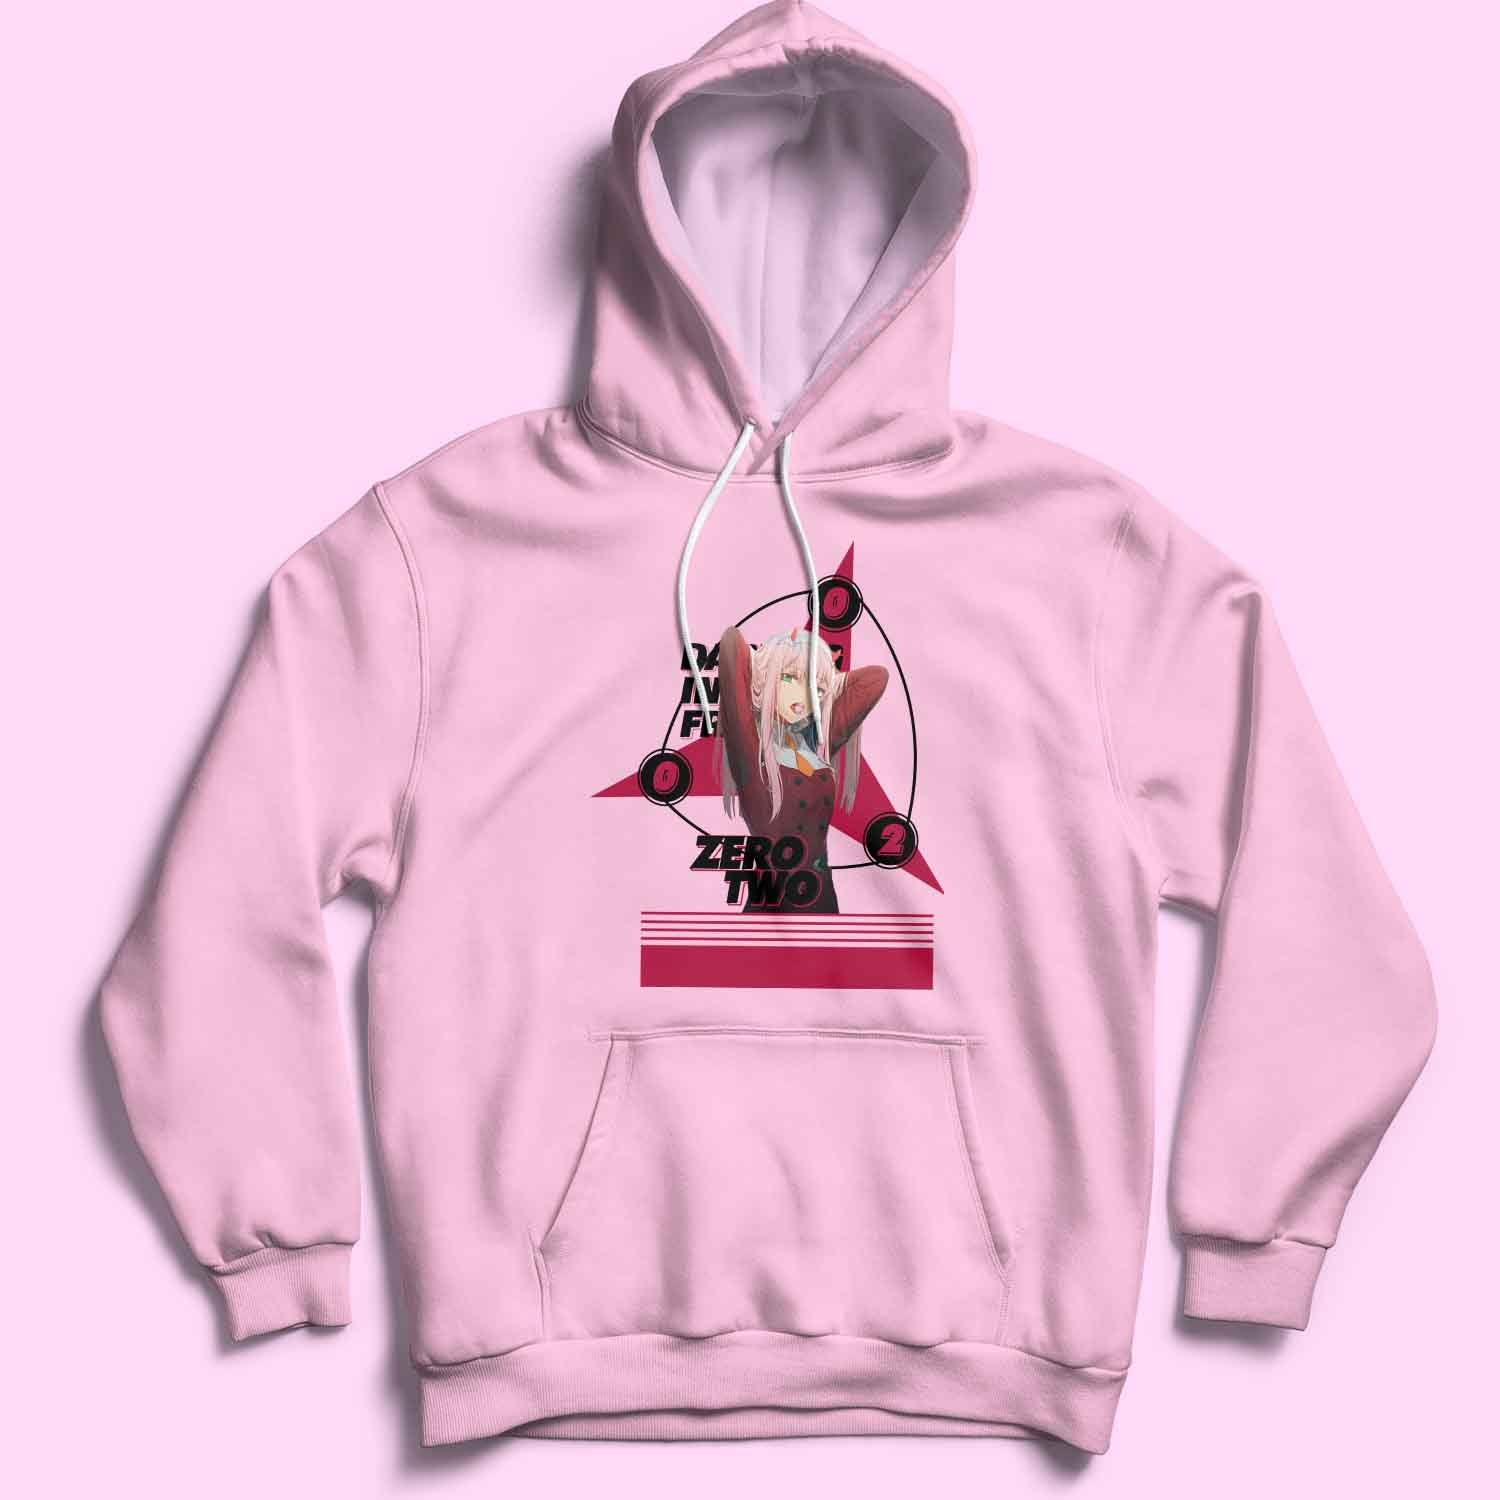 Darling in Franxx - Zero Two Fan's Art T Shirt / Sweatshirt / Hoodie / Vneck